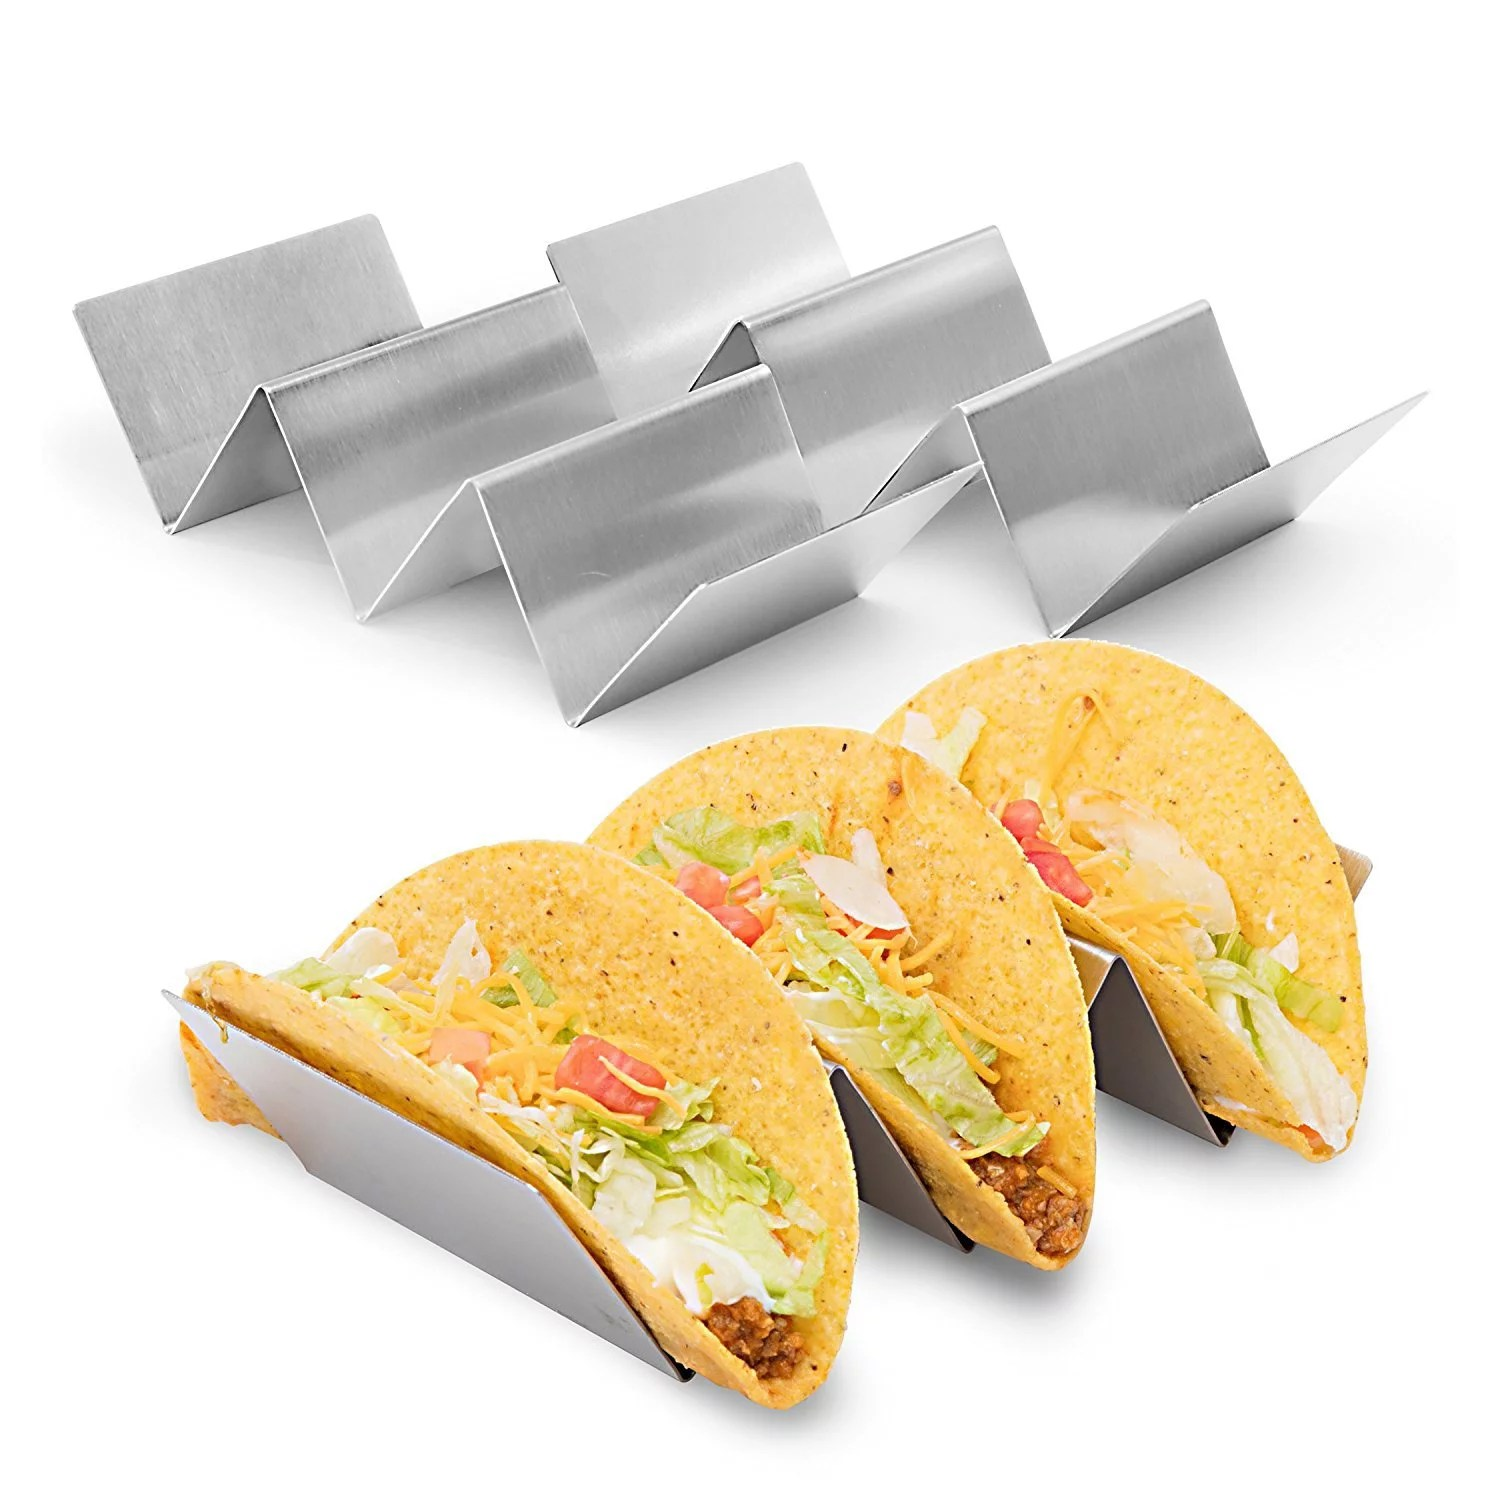 2 pk Taco Holder Stainless Steel Restaurant Quality Holds